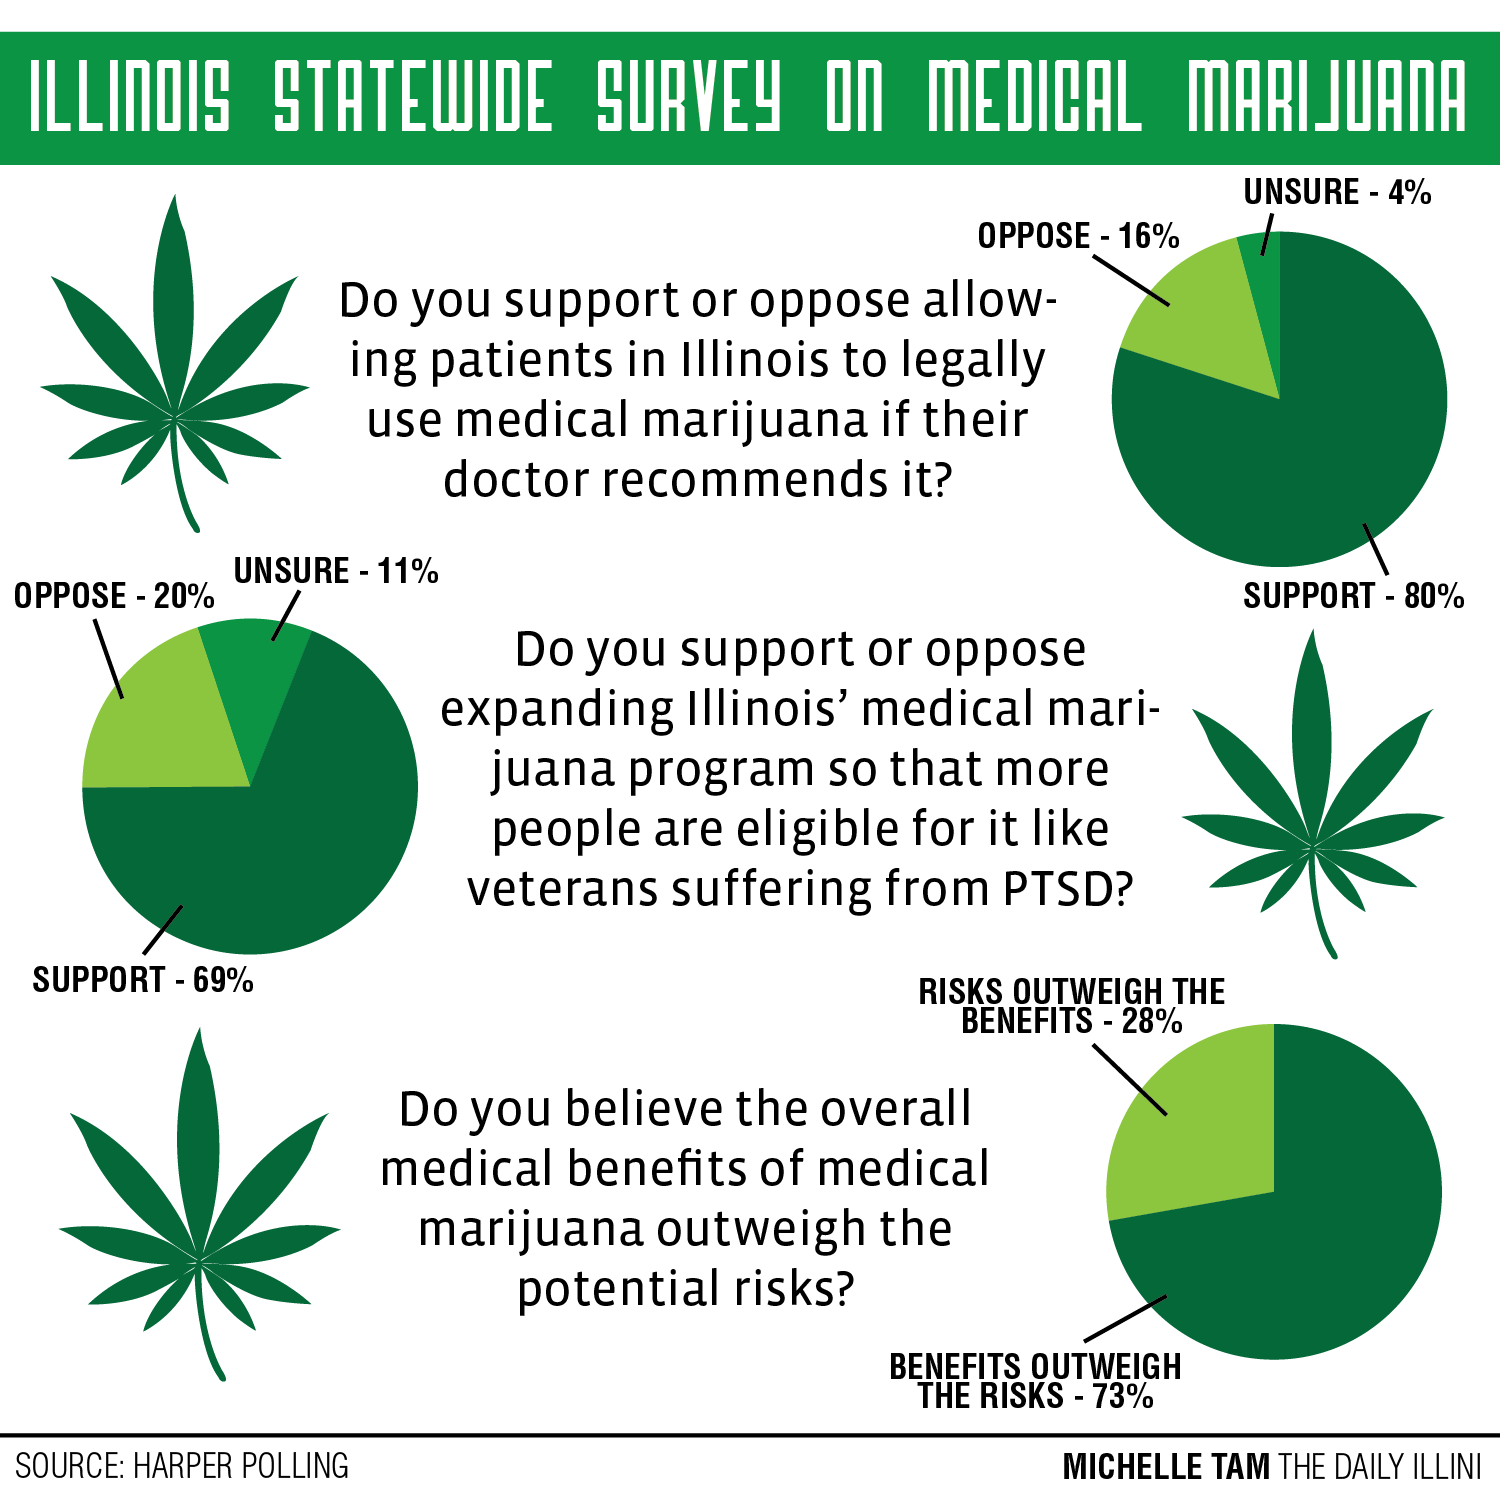 %3Cp%3EA+new+medical+marijuana+dispensary+is+opening+in+Champaign.+Groups+are+demonstrating+in+order+to+push+Rauner+towards+approving+more+conditions+eligible+for+medical+cannabis.%3C%2Fp%3E